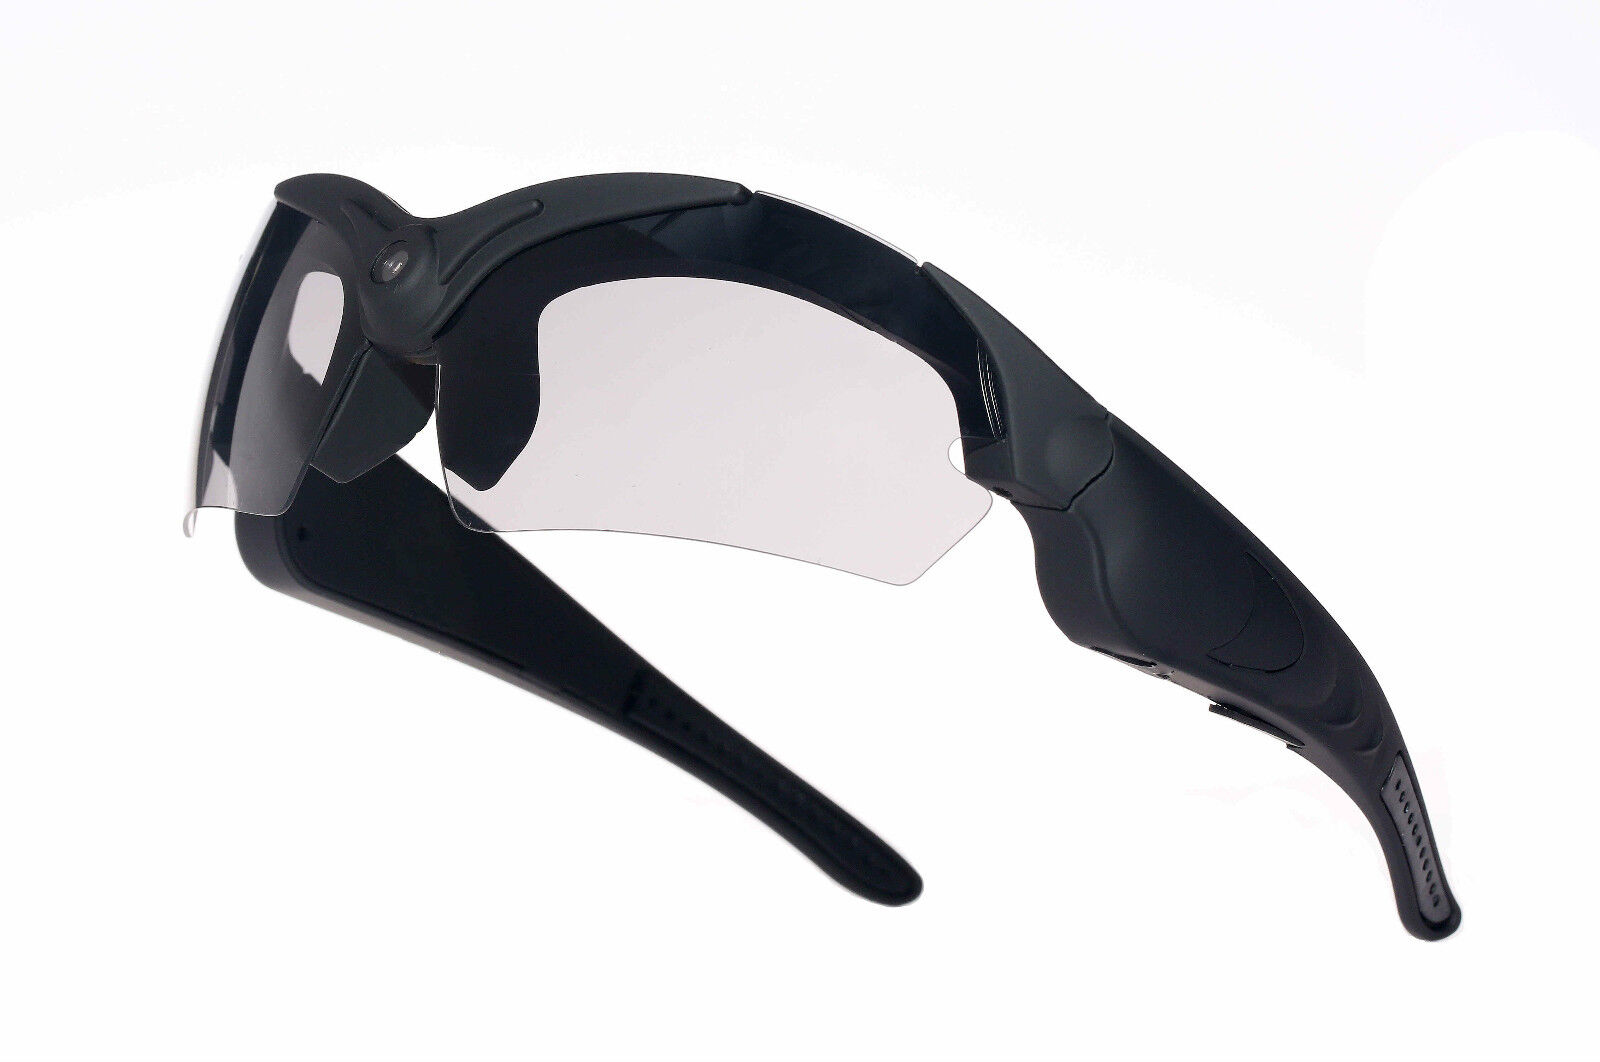 New POV Action Video Camera 720p HD High Resolution sports glasses + lenses